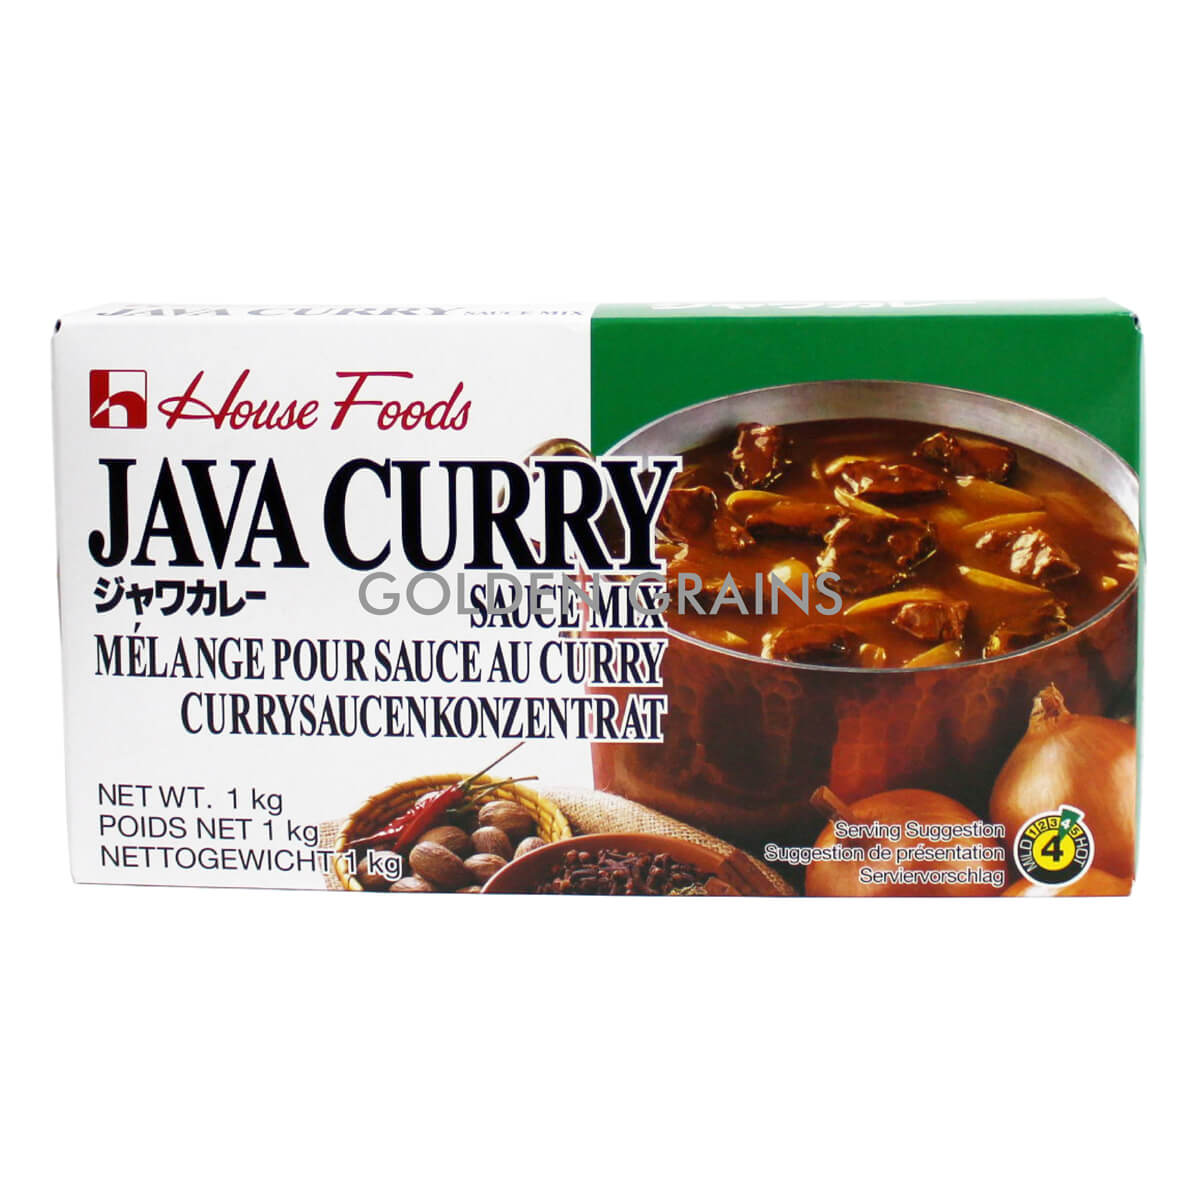 Golden Grains House Foods - Java Curry - Front.jpg